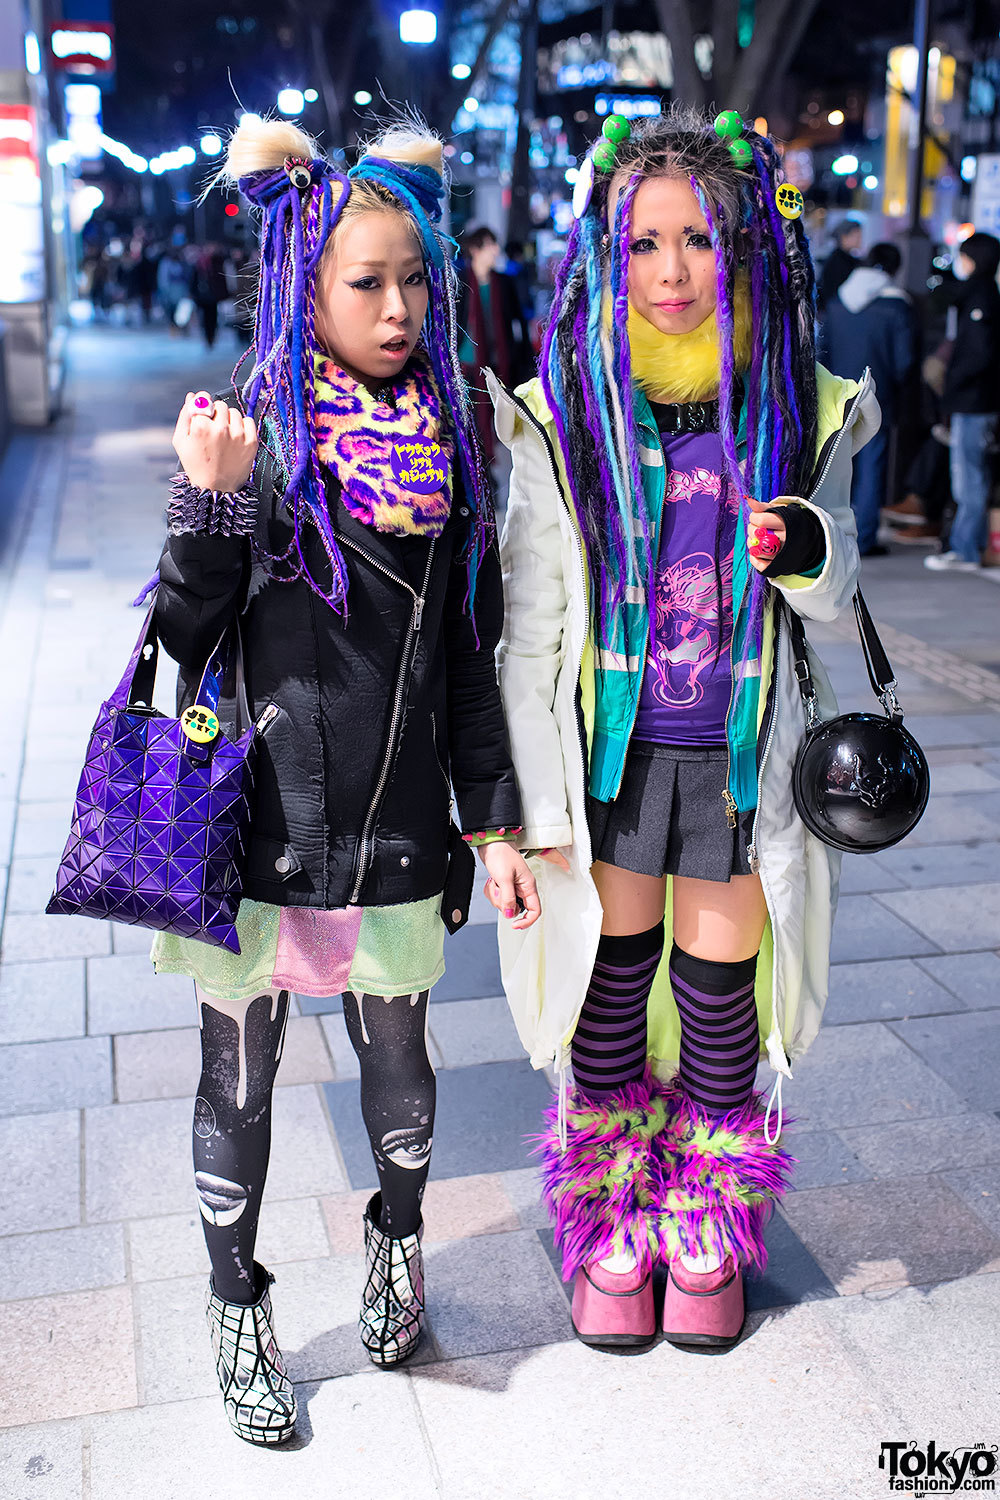 Two awesome Japanese girls - Tokyo Dolores dancer Nancy & Kandi Raver Ichika - rocking purple & blue hair falls on the street in Harajuku.